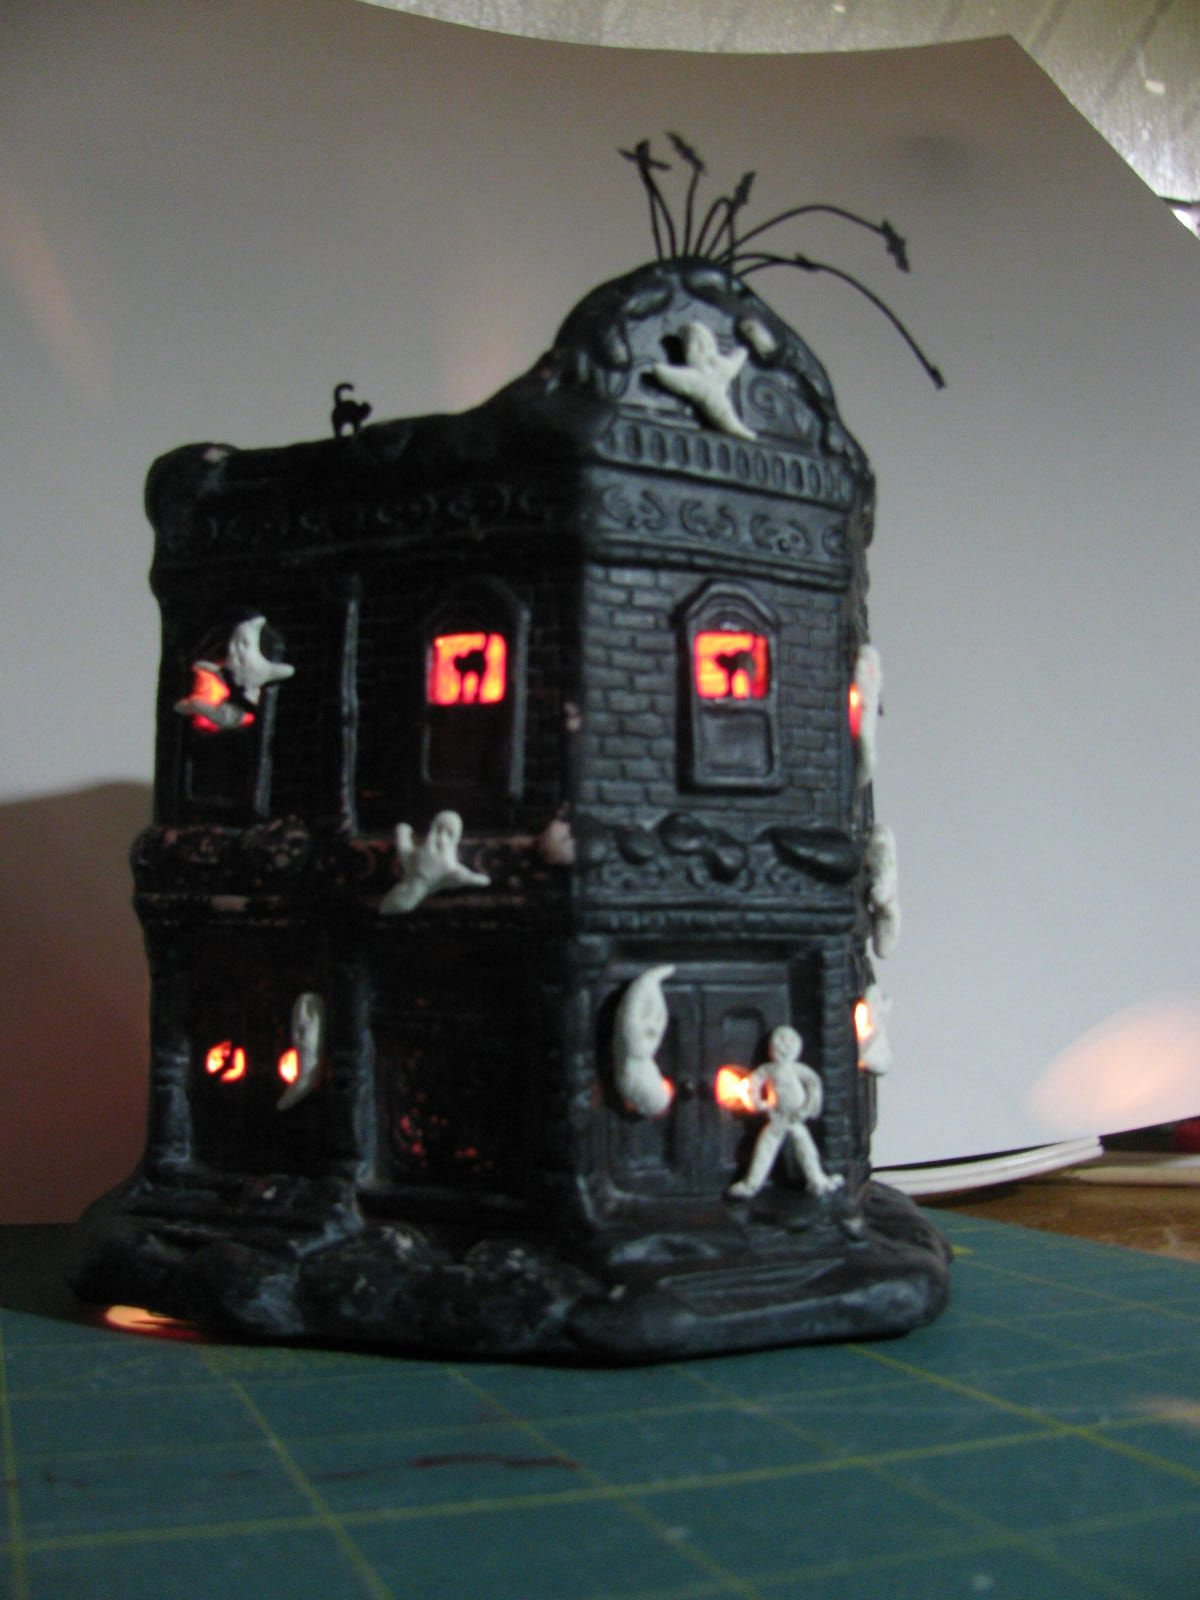 A ghost house I made for Halloween from a Goodwill store Christmas house. An idea that came from Pinerest of course. The design though was all my own.